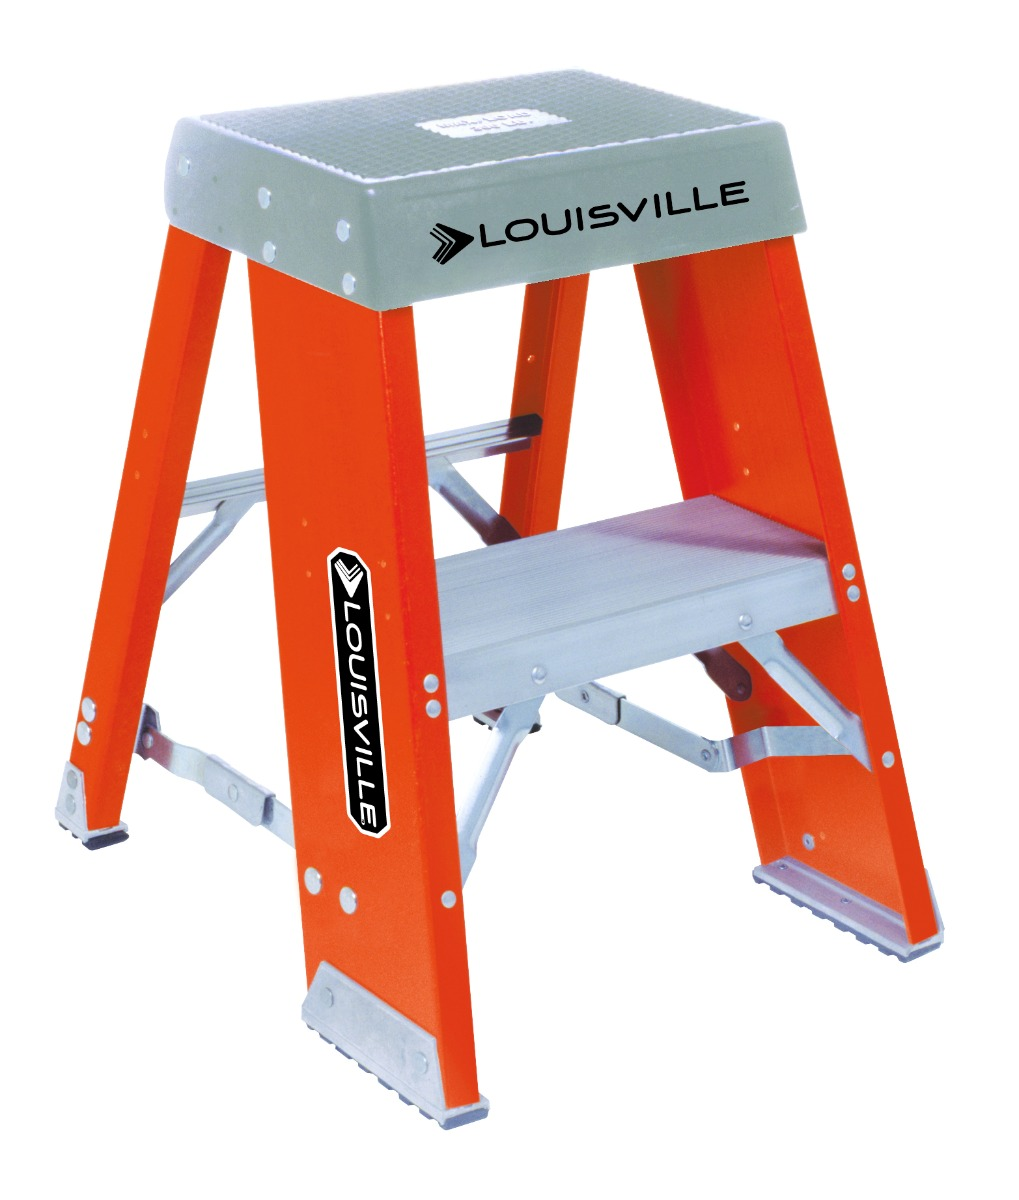 Louisville 2' Fiberglass Industrial Step Stool 300lbs. Capacity